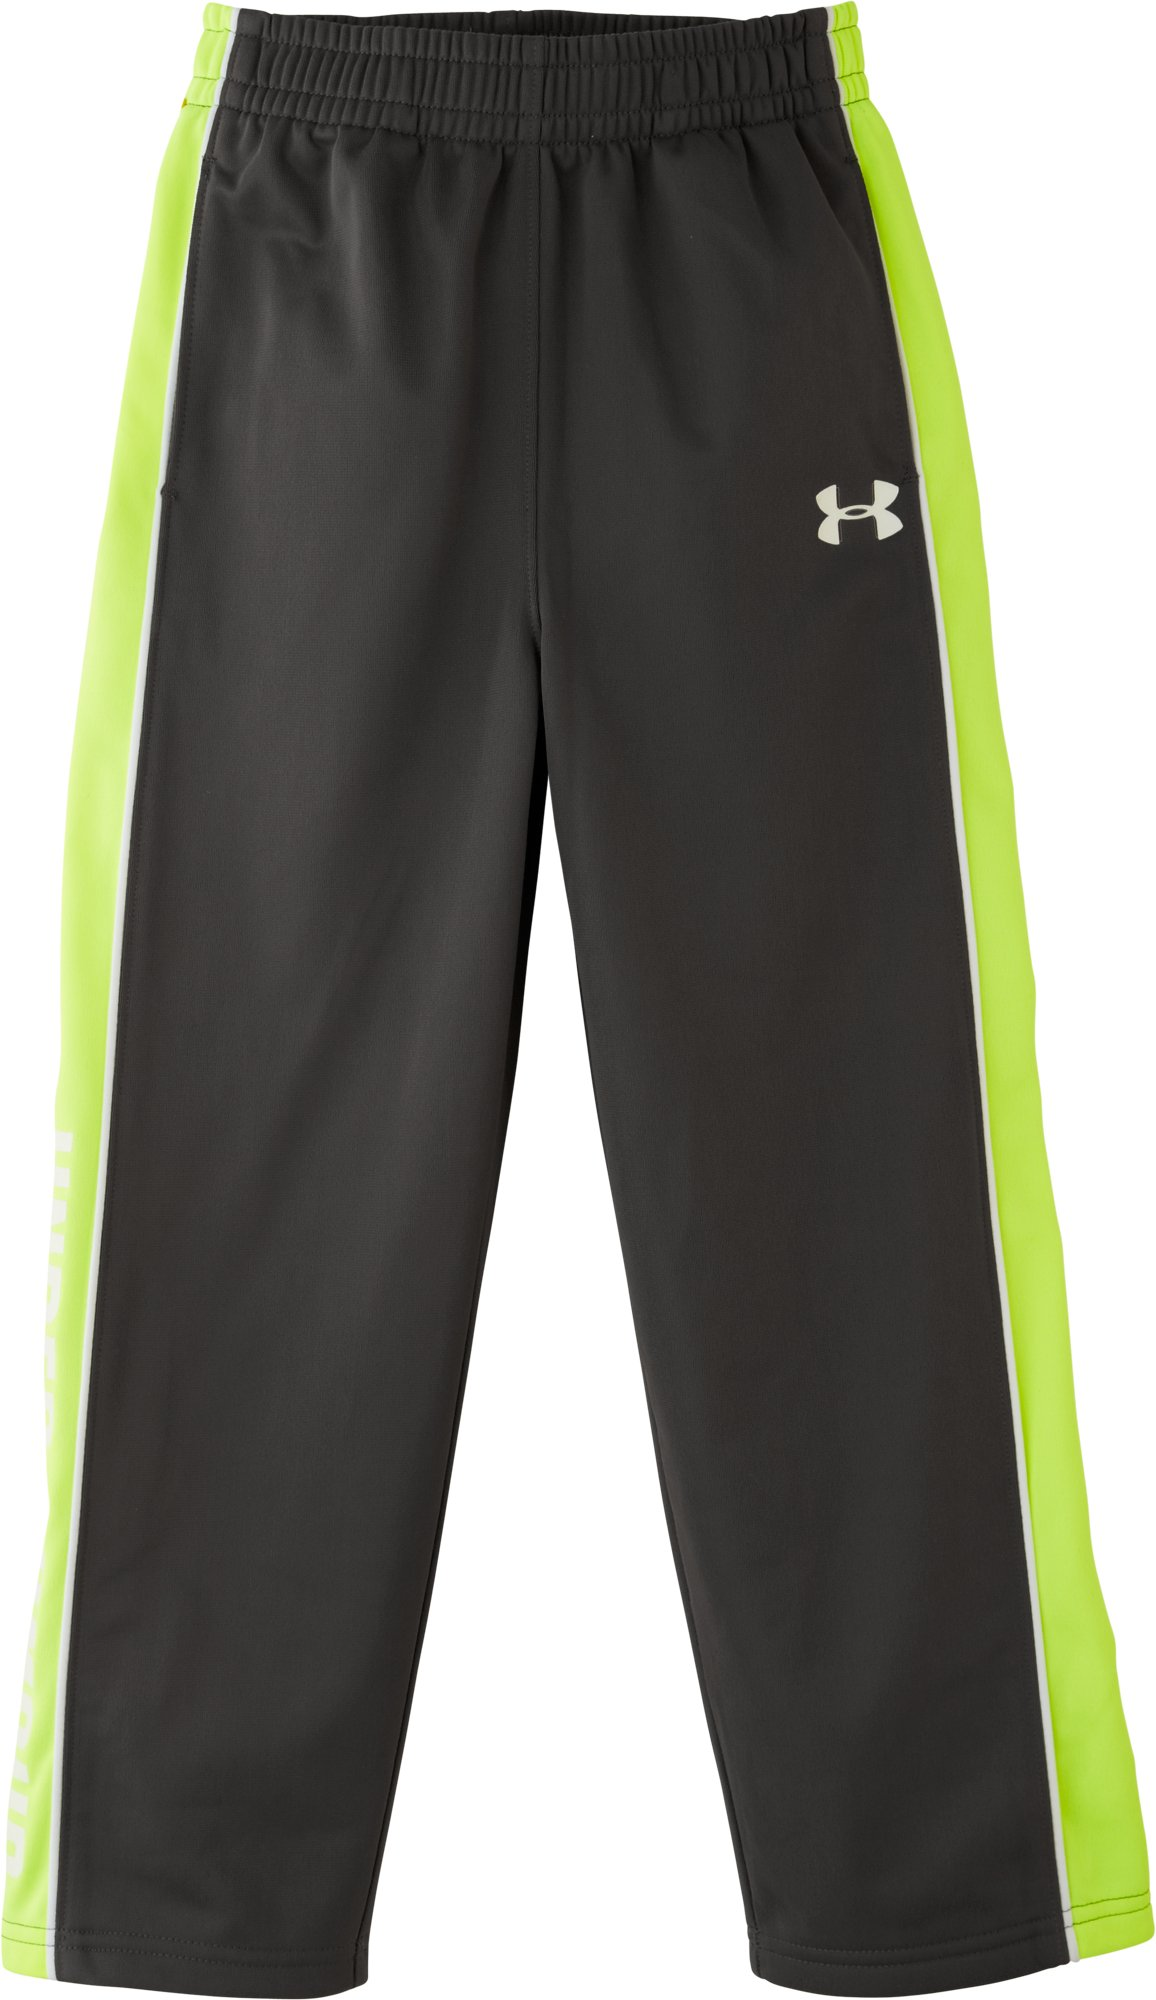 Boys' Pre-School UA Brawler Tricot Pants, Charcoal, zoomed image